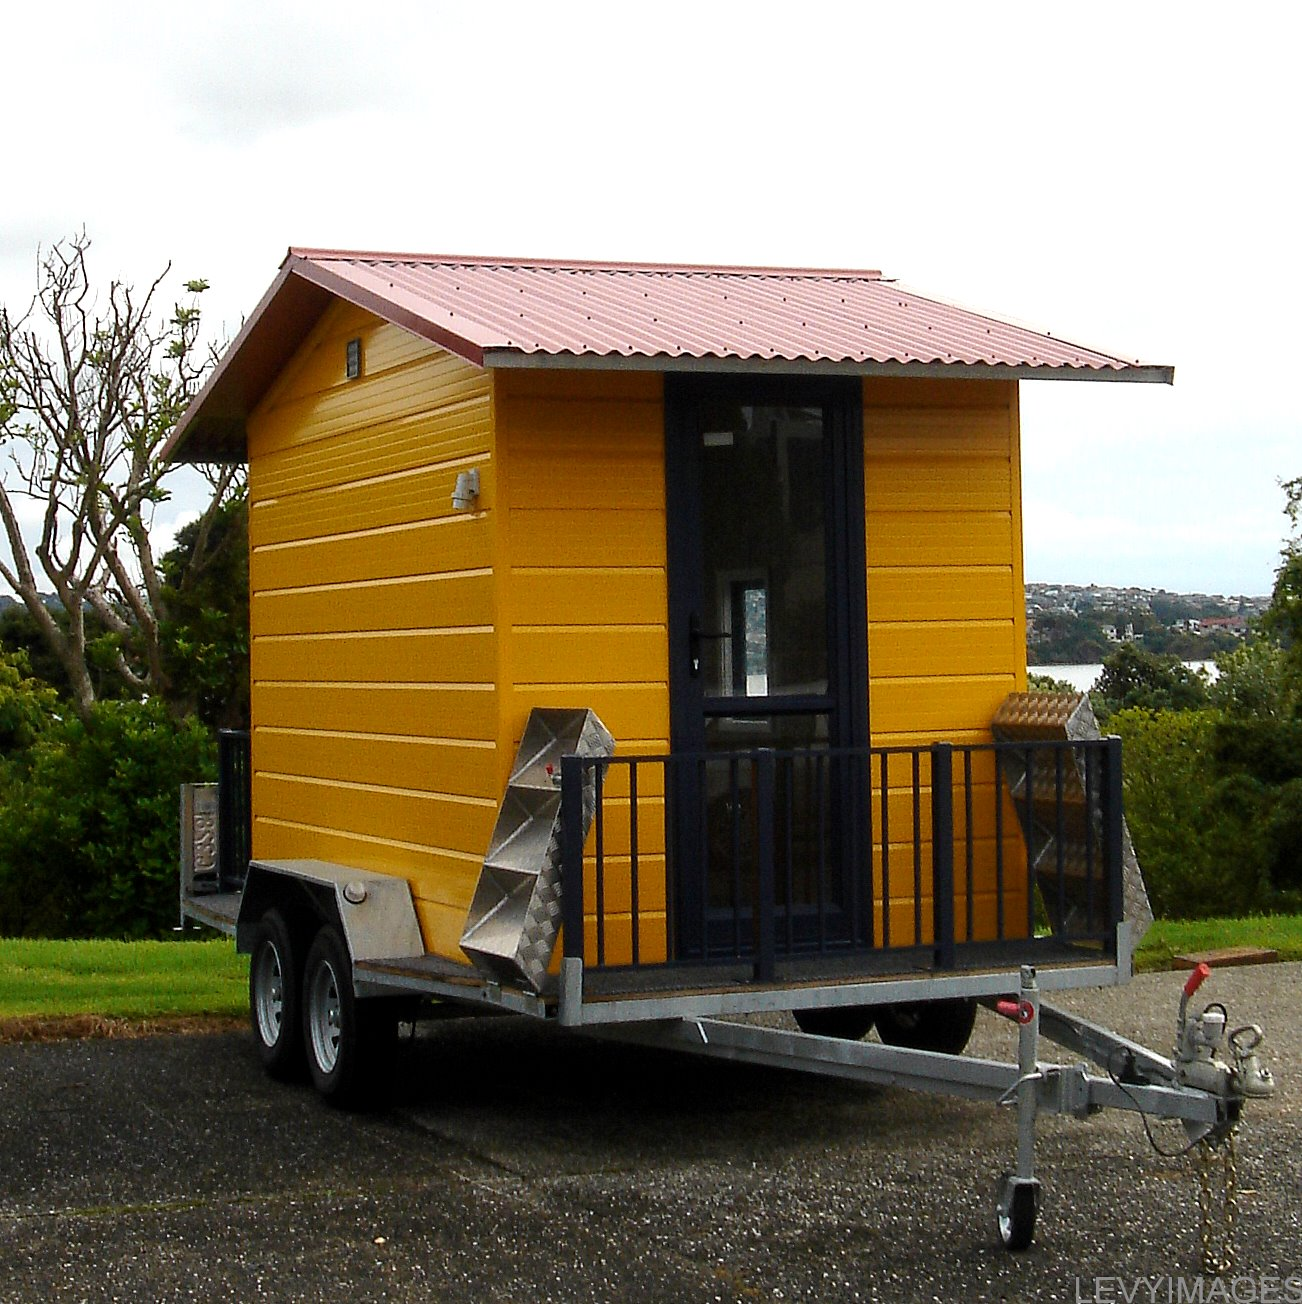 house design and build auckland with Tiny House On Wheels 30 on 33 together with Modernist Lego House in addition Cute Lord Of The Rings Hobbit Houses In New Zealand besides Tiny House On Wheels 30 furthermore Windows 2.